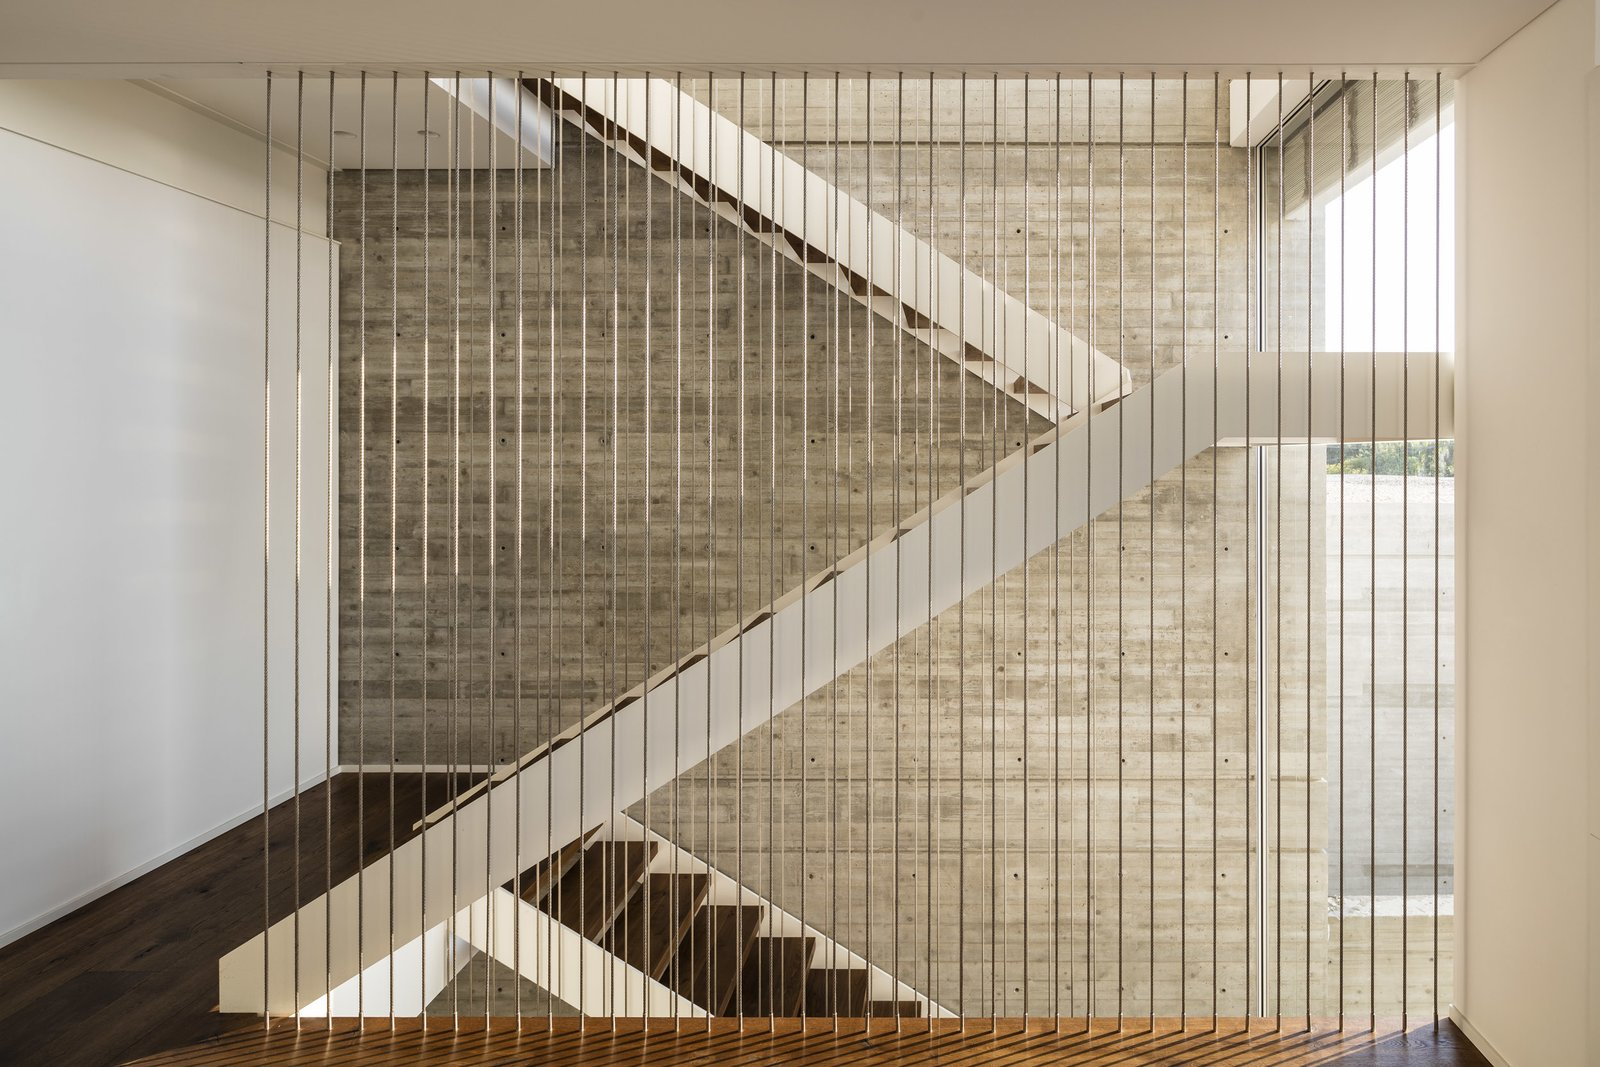 At the meeting point of these two masses, public and private spaces, is a vertical axis that cuts the horizontal plane with the use of a staircase that goes through all levels of the house.